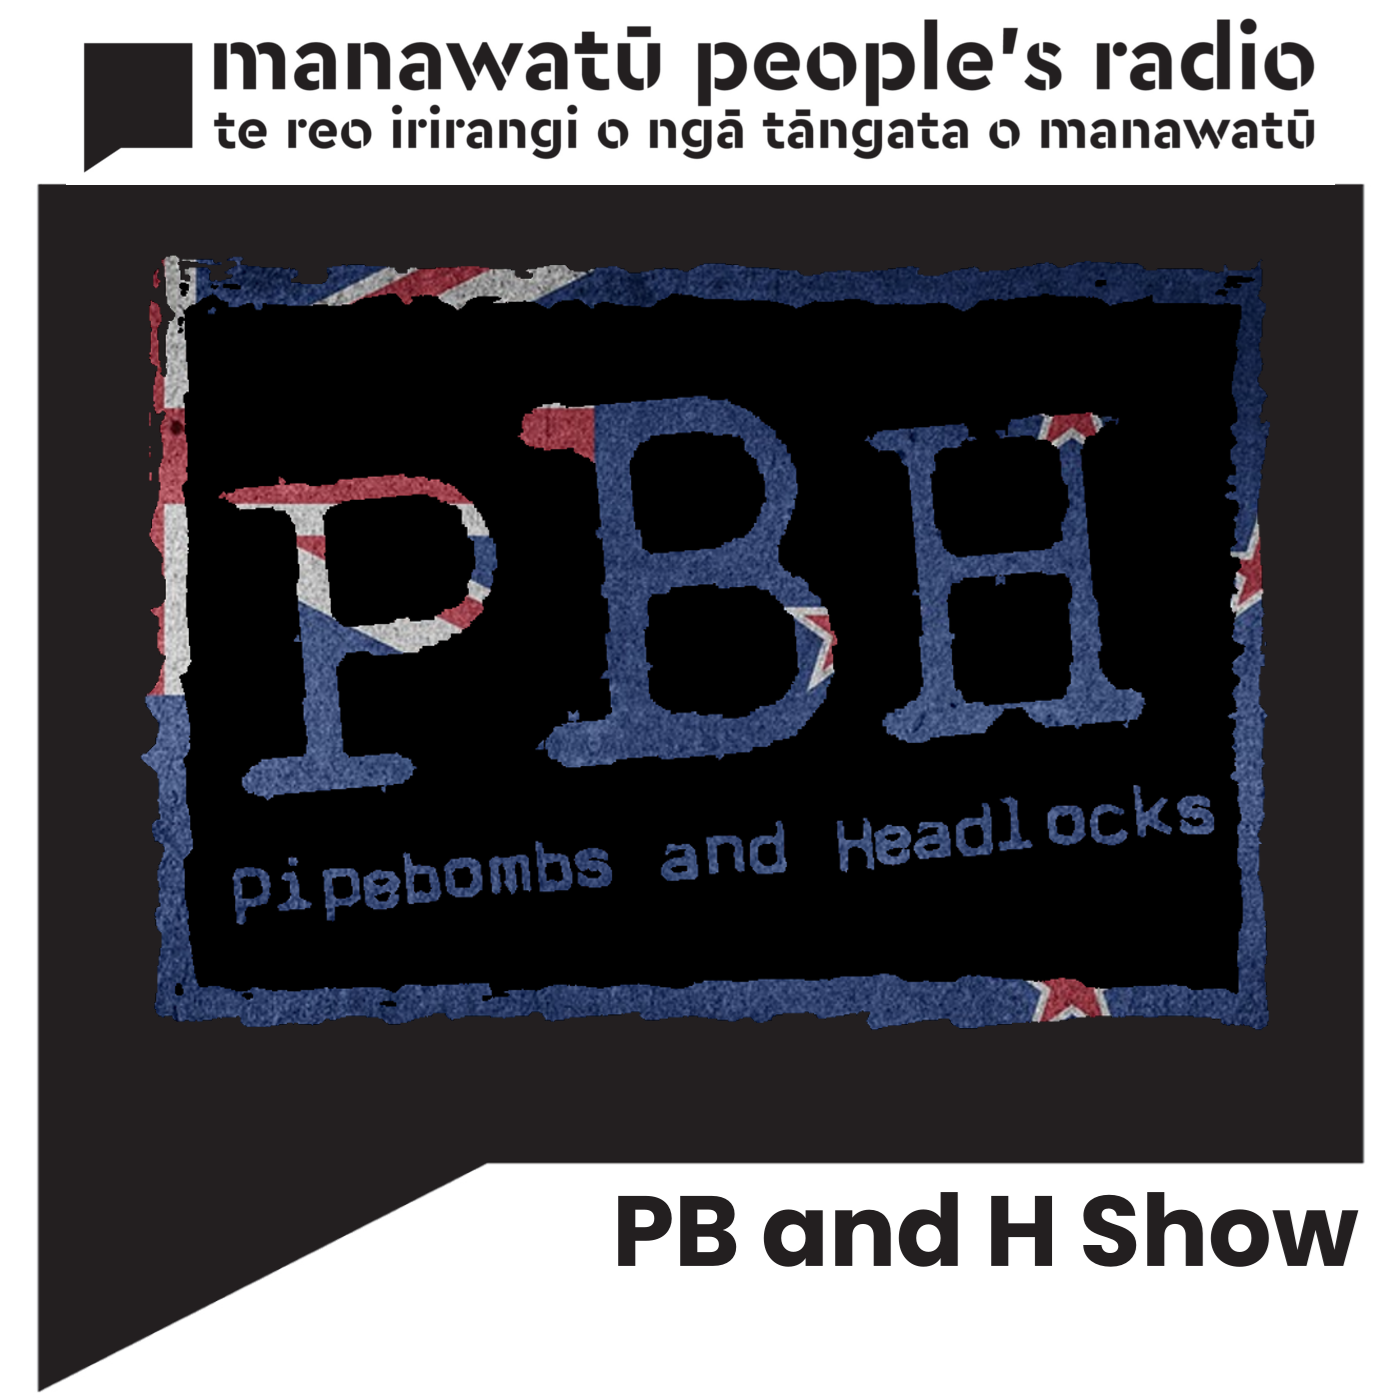 PB and H Show - 19-11-2019 Episode